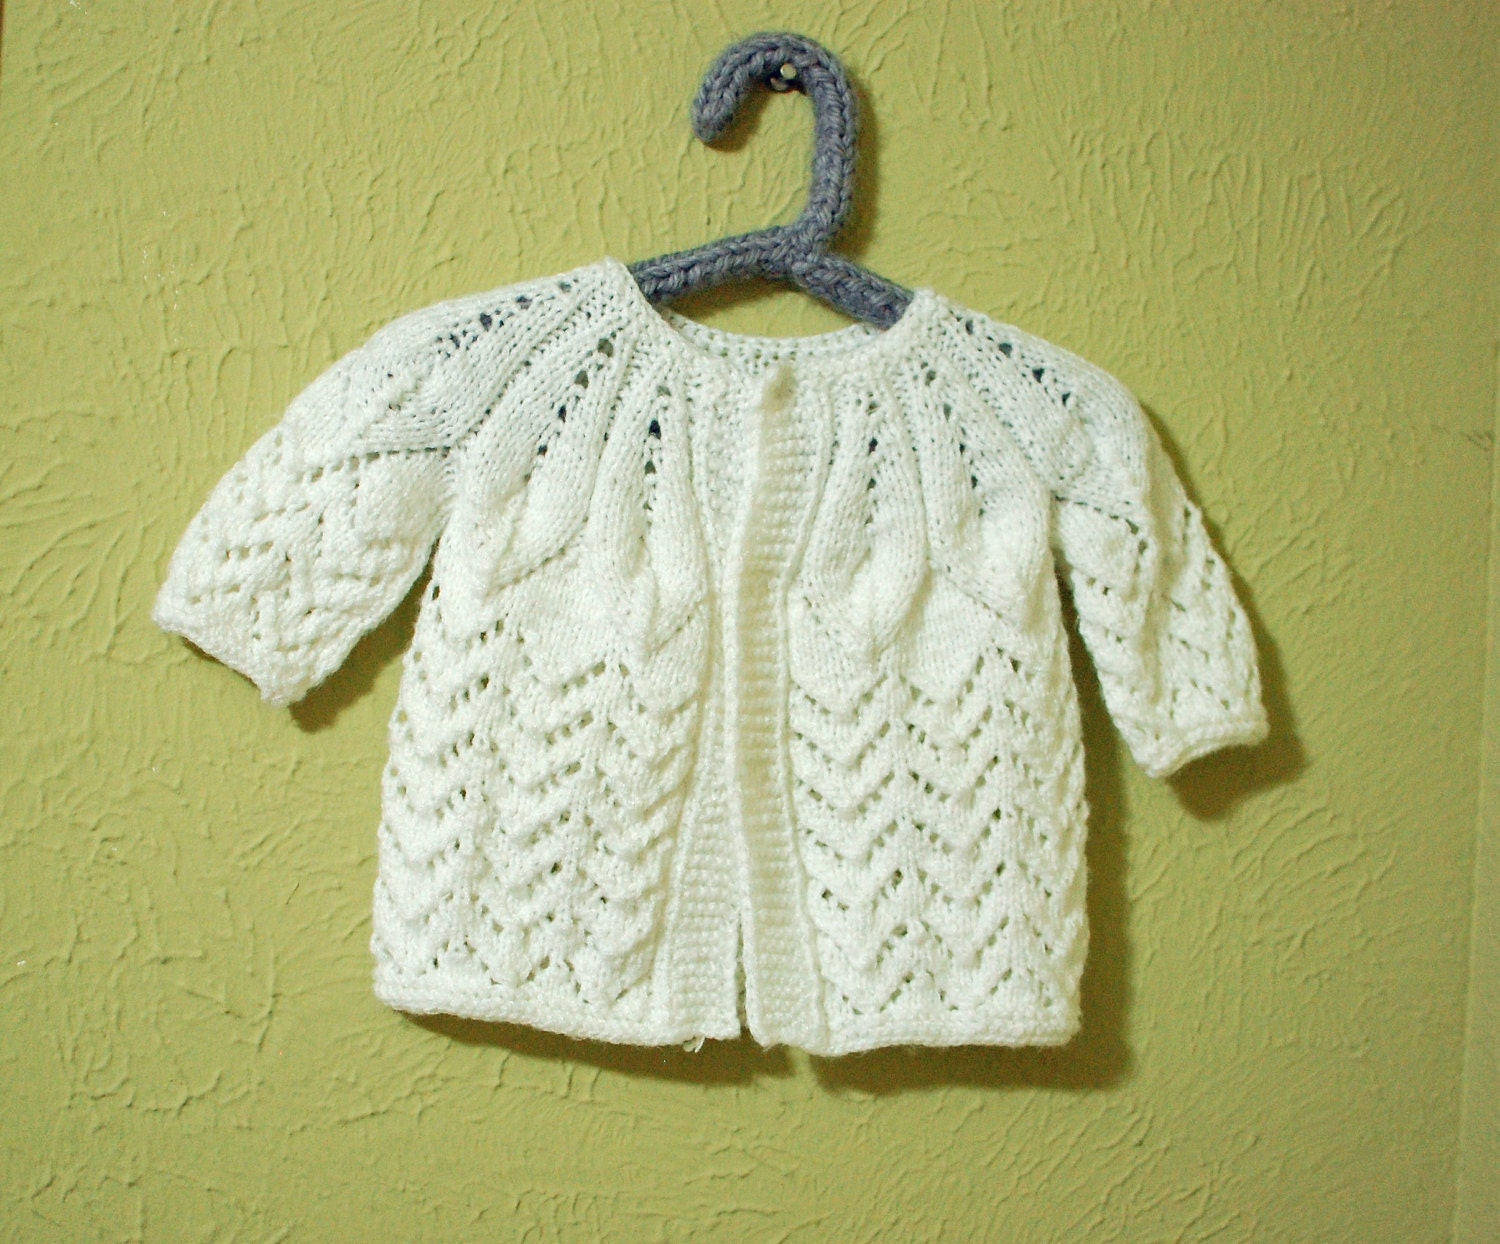 Knit Leaf Pattern Baby Sweater : vintage lacy leaf knit baby sweater cardigan 3-6 months